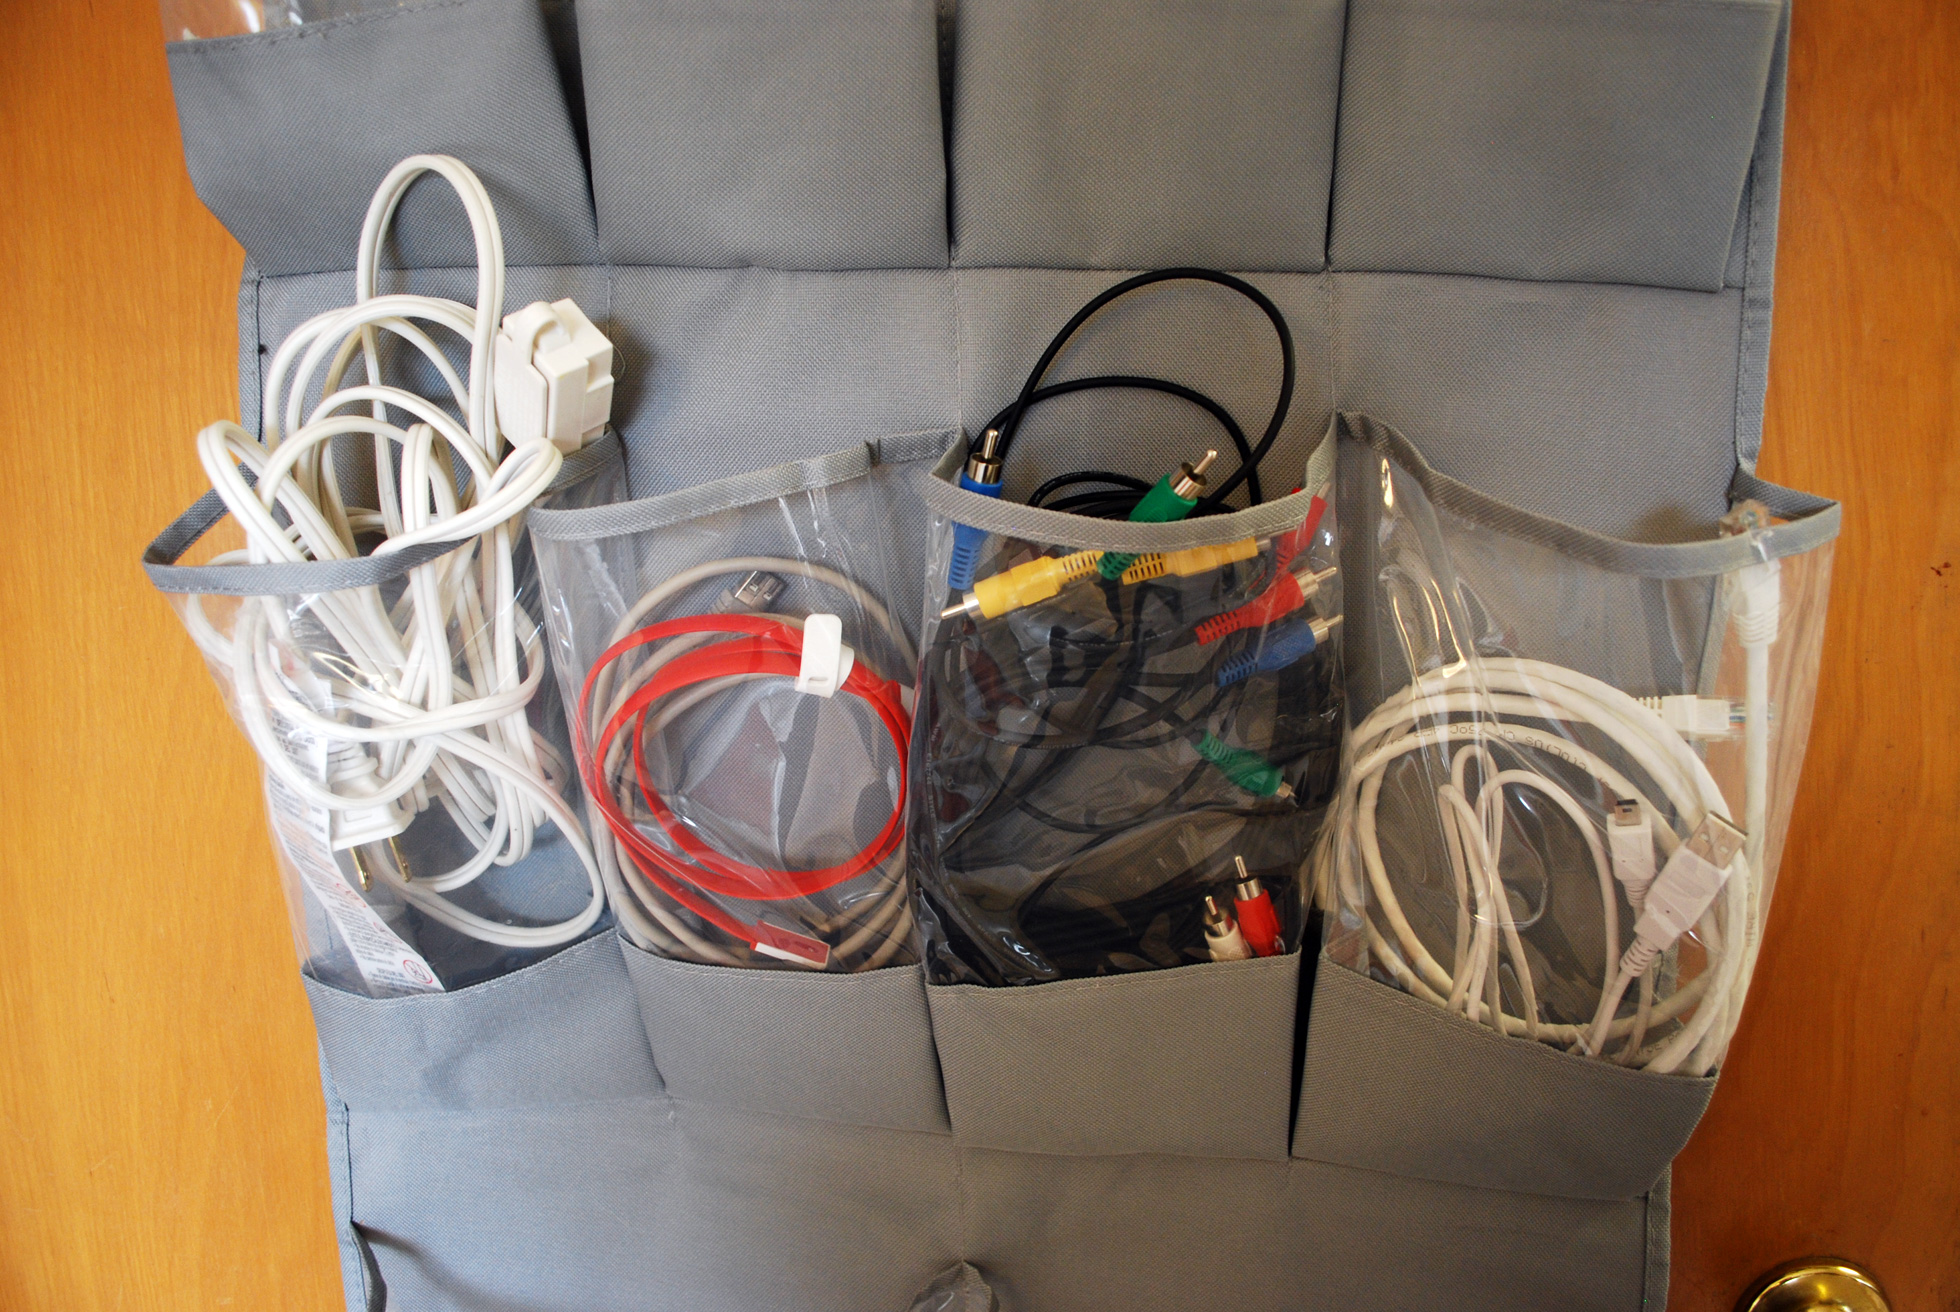 Over-the-door shoe organizer used to store computer cords